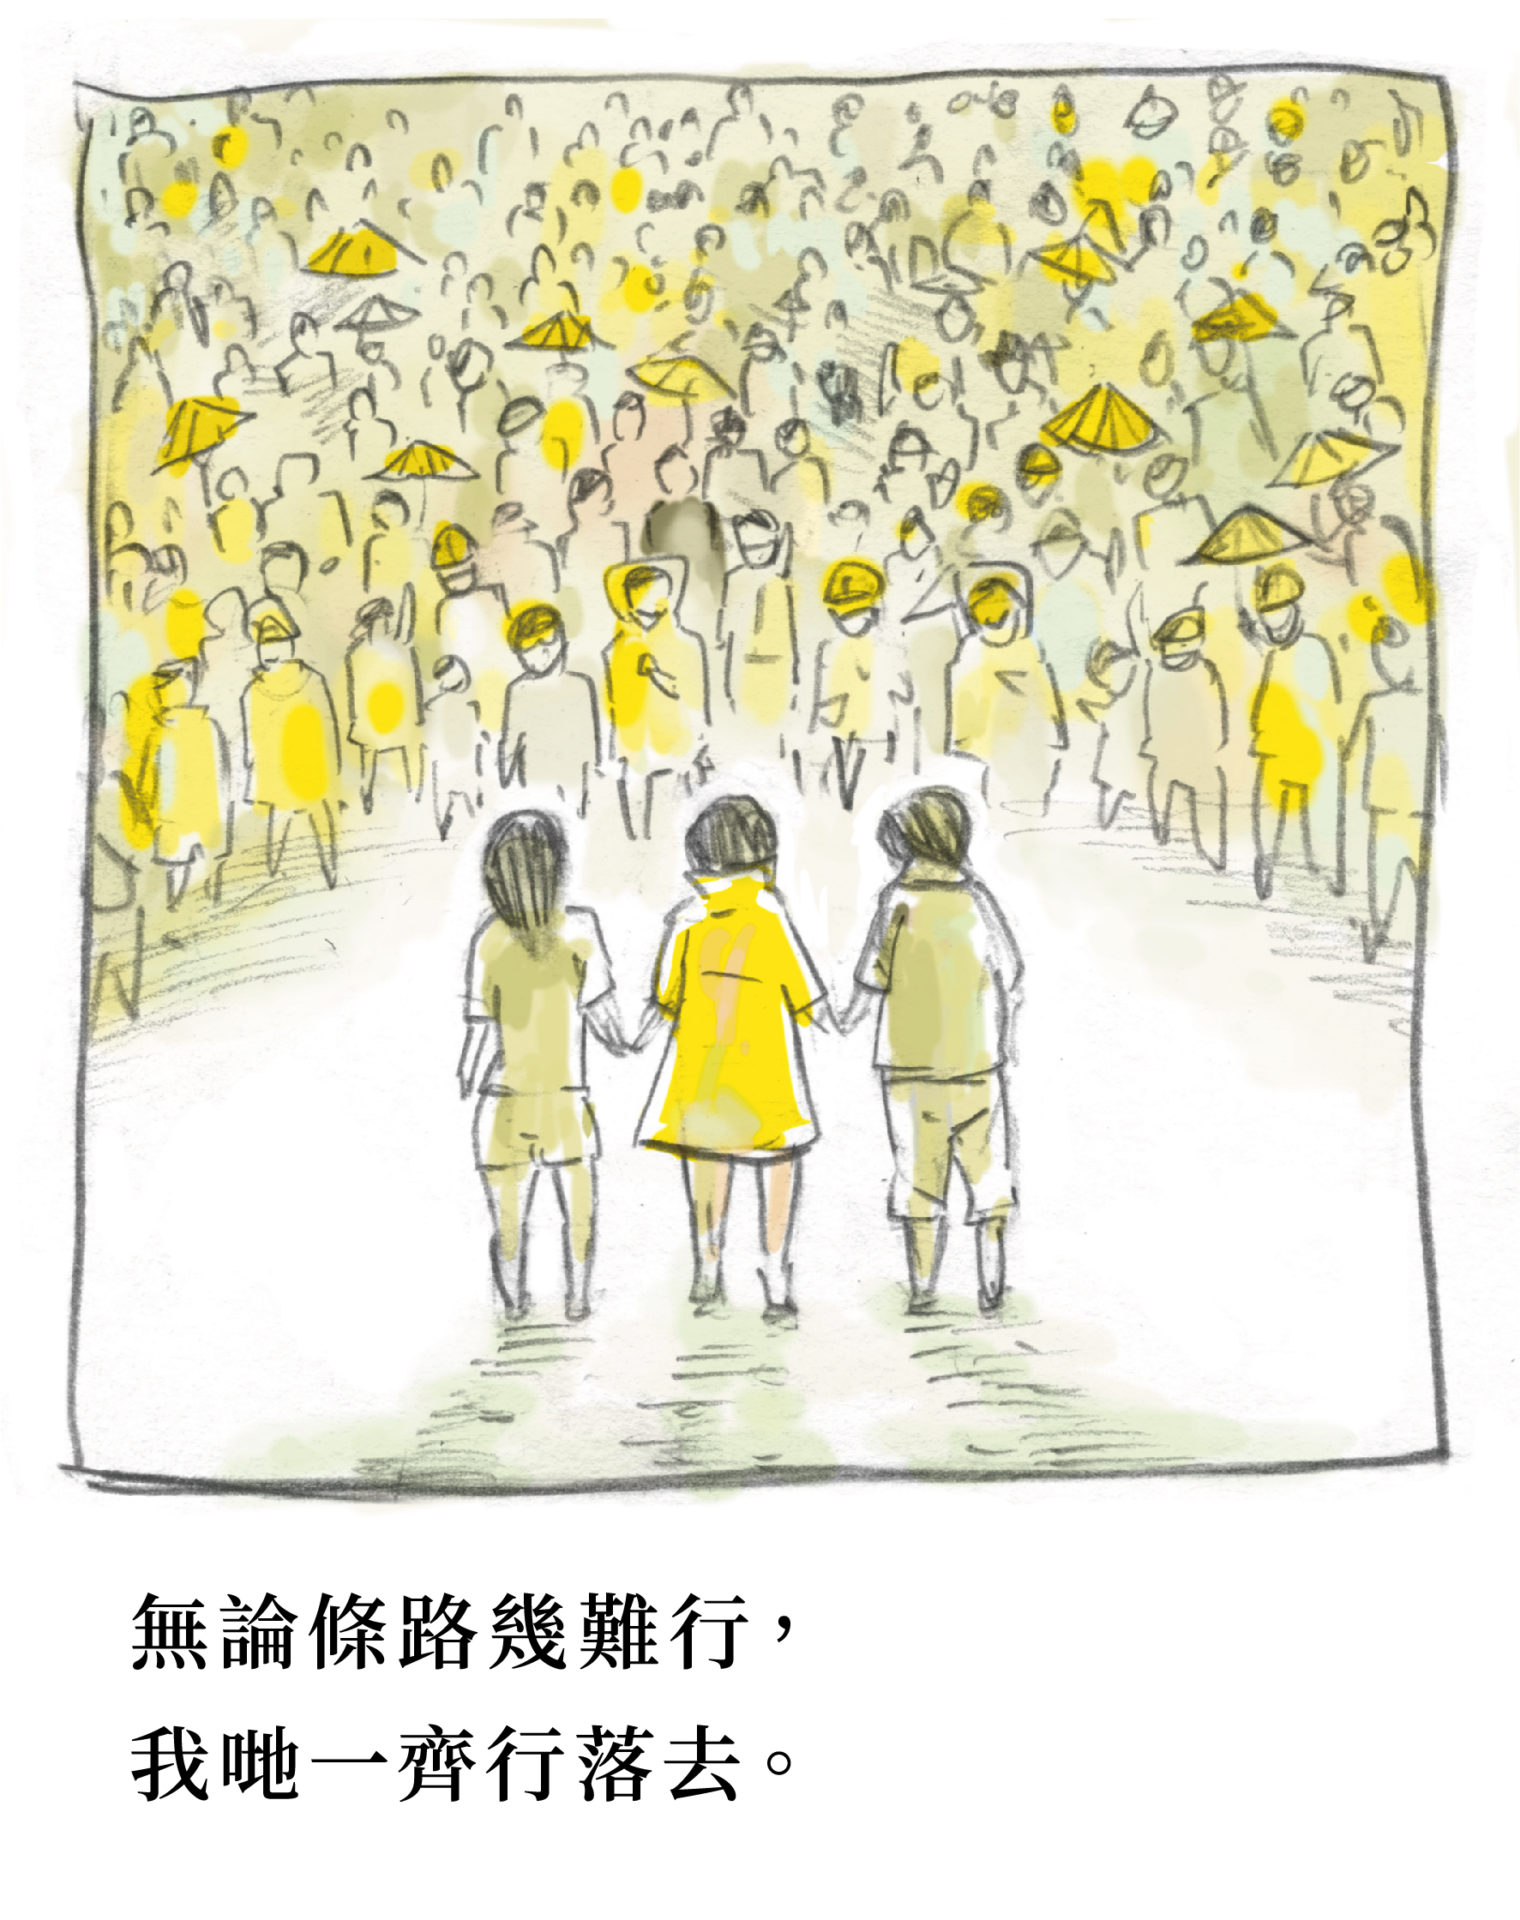 Illustration of protesters standing by each other during the extradition bill protests that is circulating on social media. Screenshot courtesy of the author.